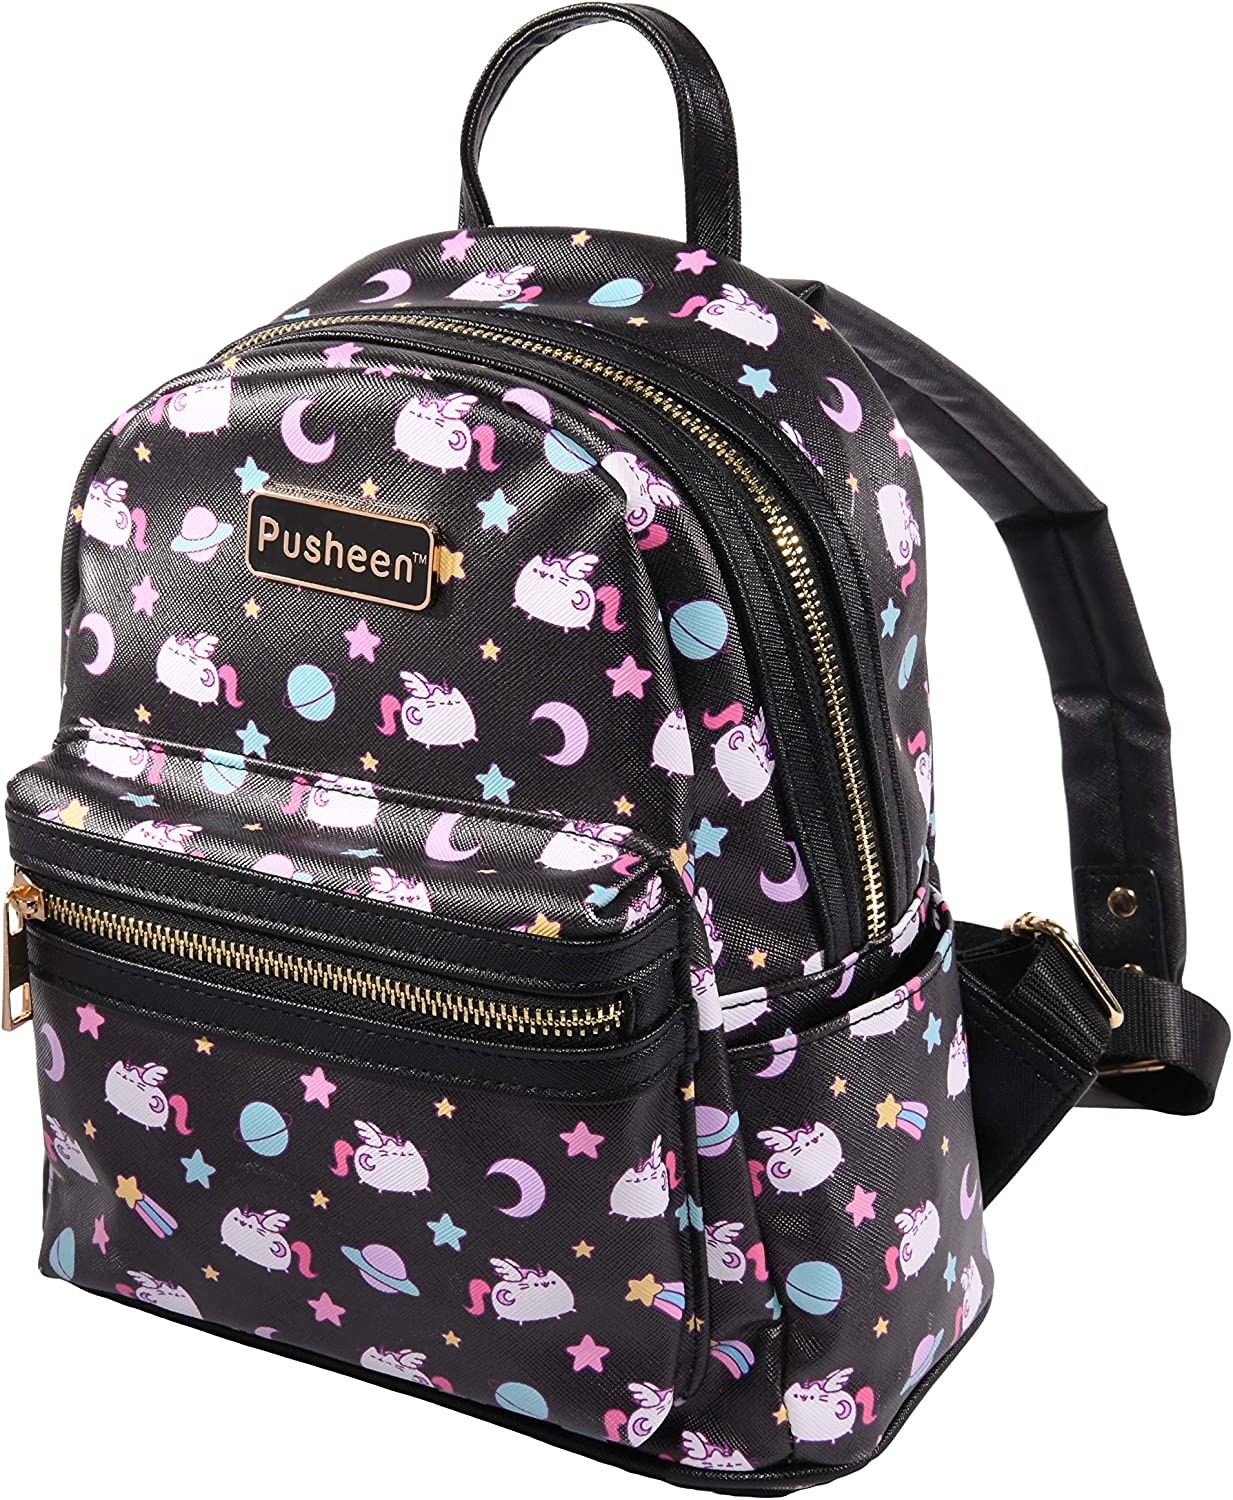 Pusheen the Cat Super Pusheenicorn Mini Backpack Girls Everyday Small Bag